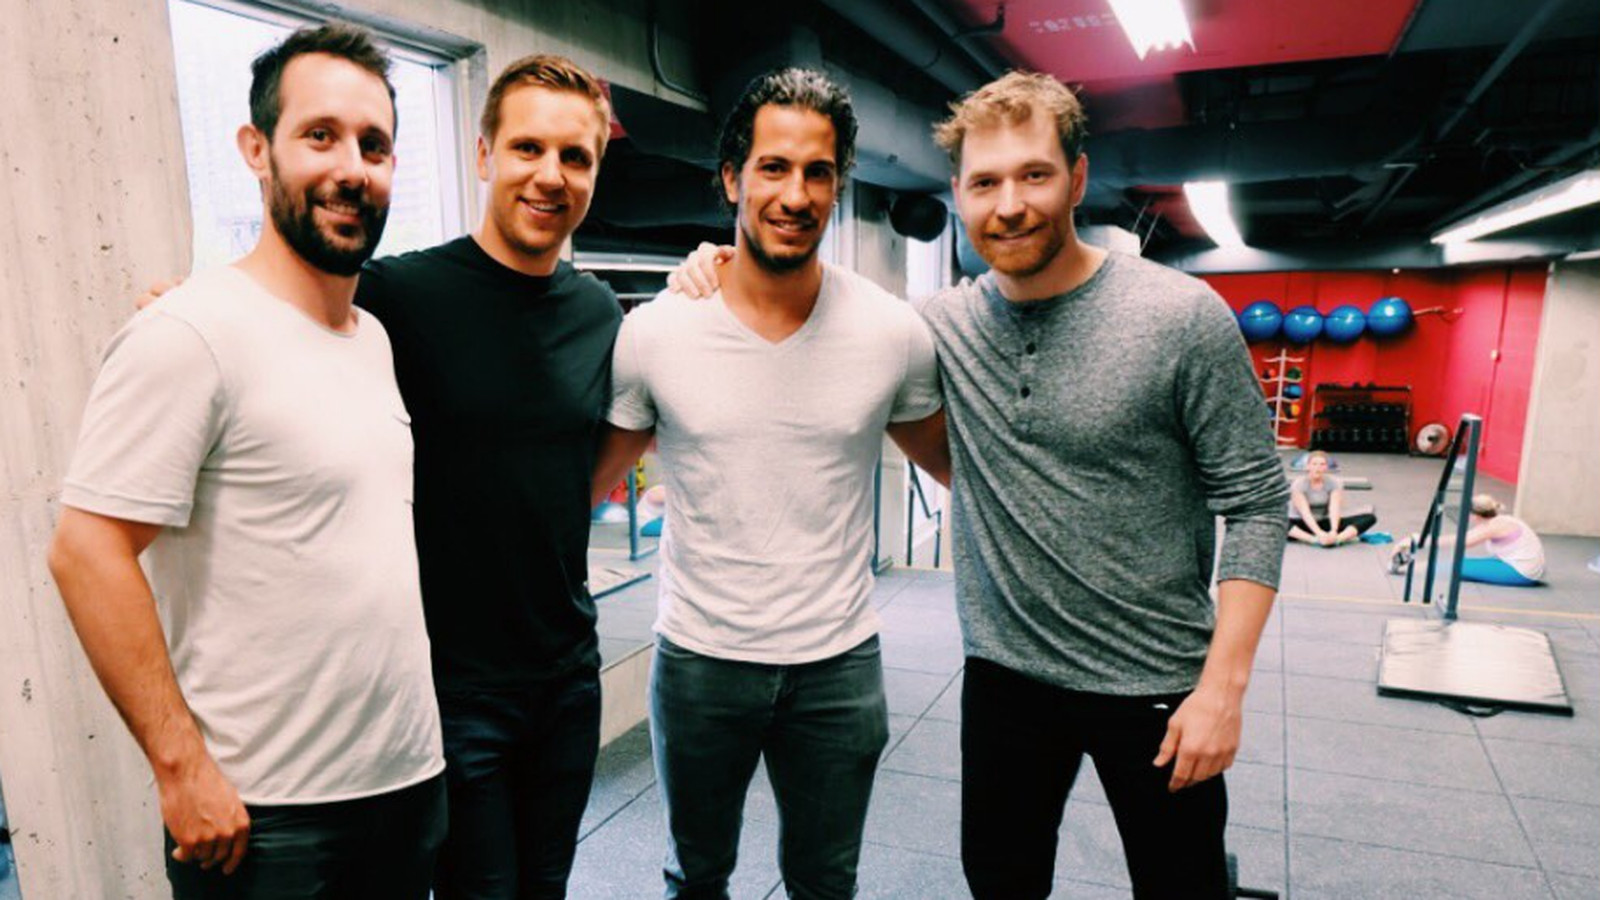 Greco_toronto_on_twitter____nhlflyers_approved.__grecotoronto__fitness__hockey__28cgiroux__89sgagner__michaeldelzotto__bschenn_10_https___t.co_w9ma5toxqv_.0.0